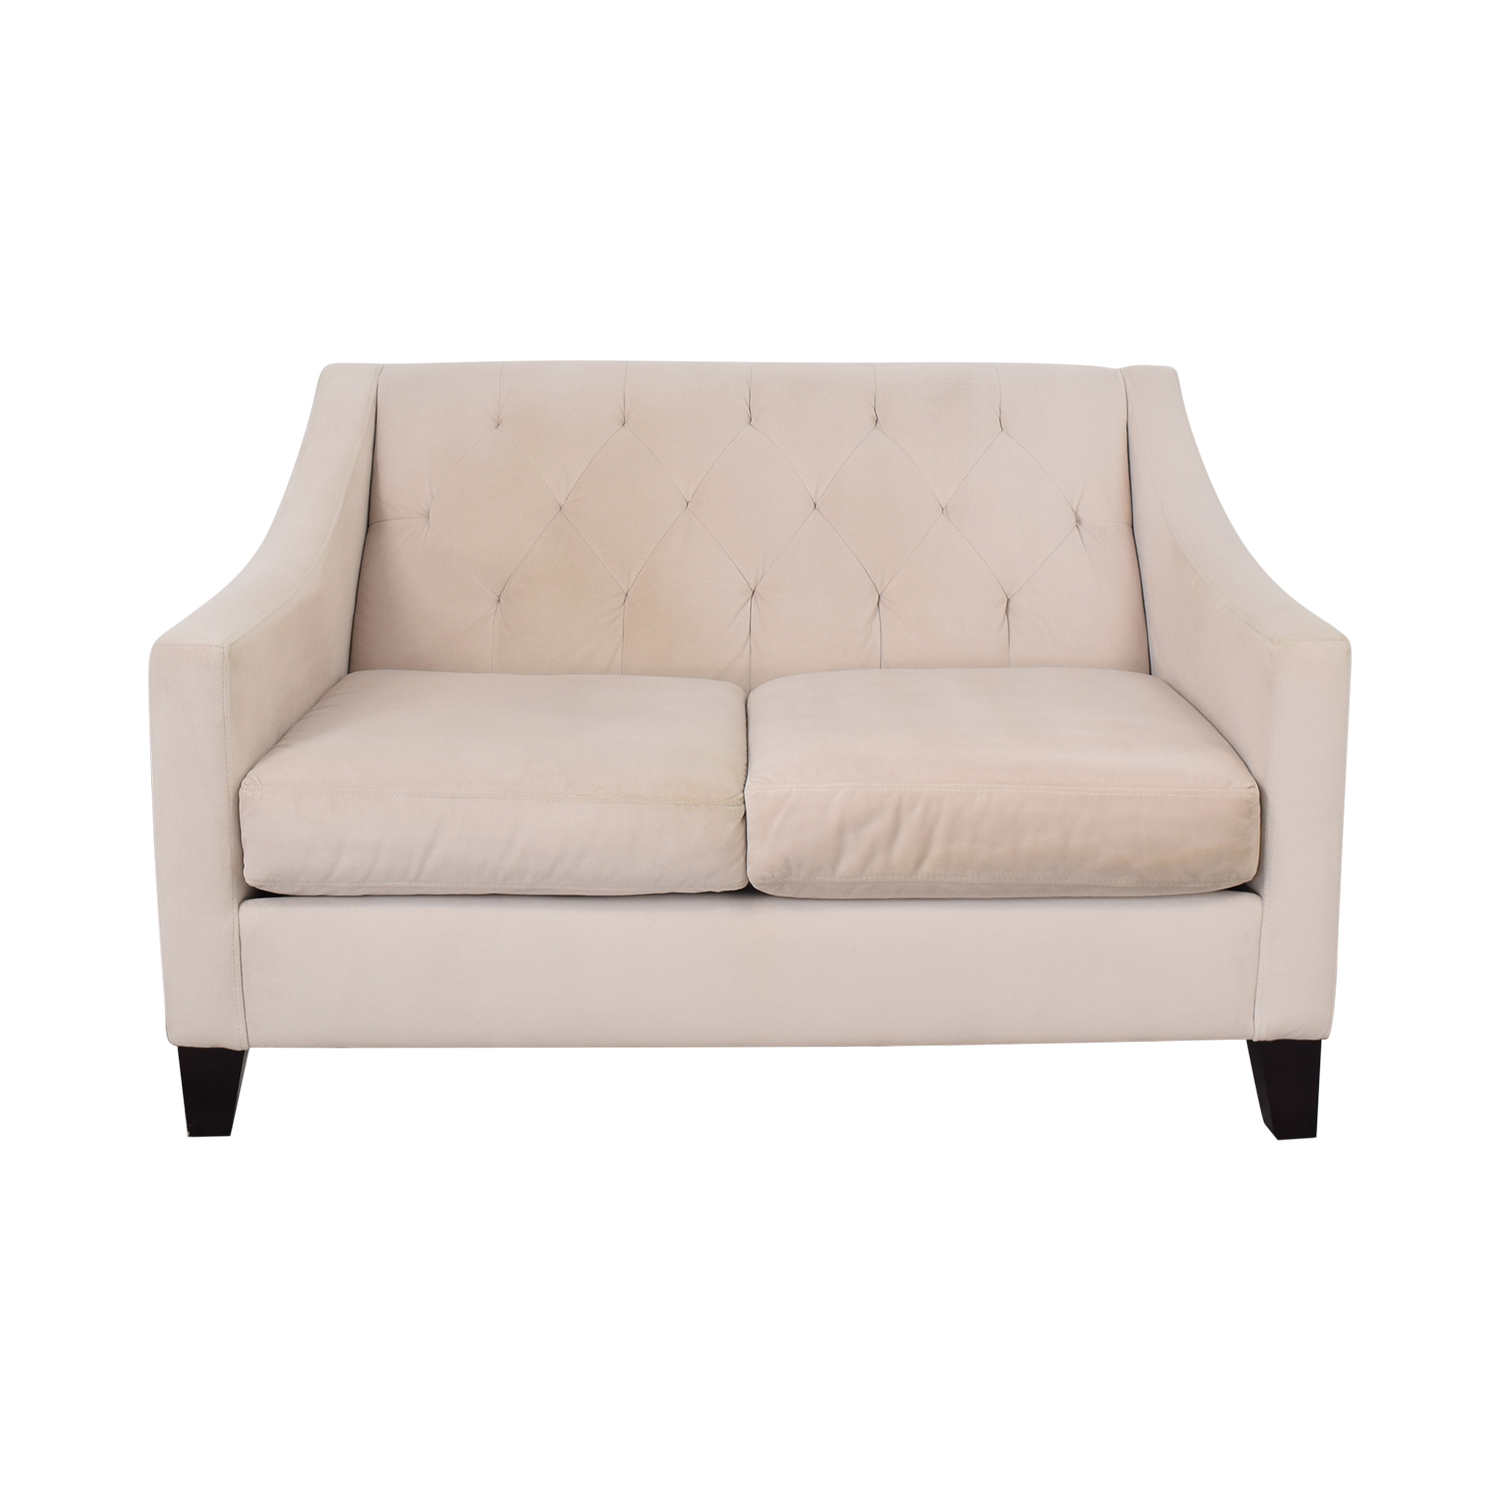 Macy's Cream Loveseat sale